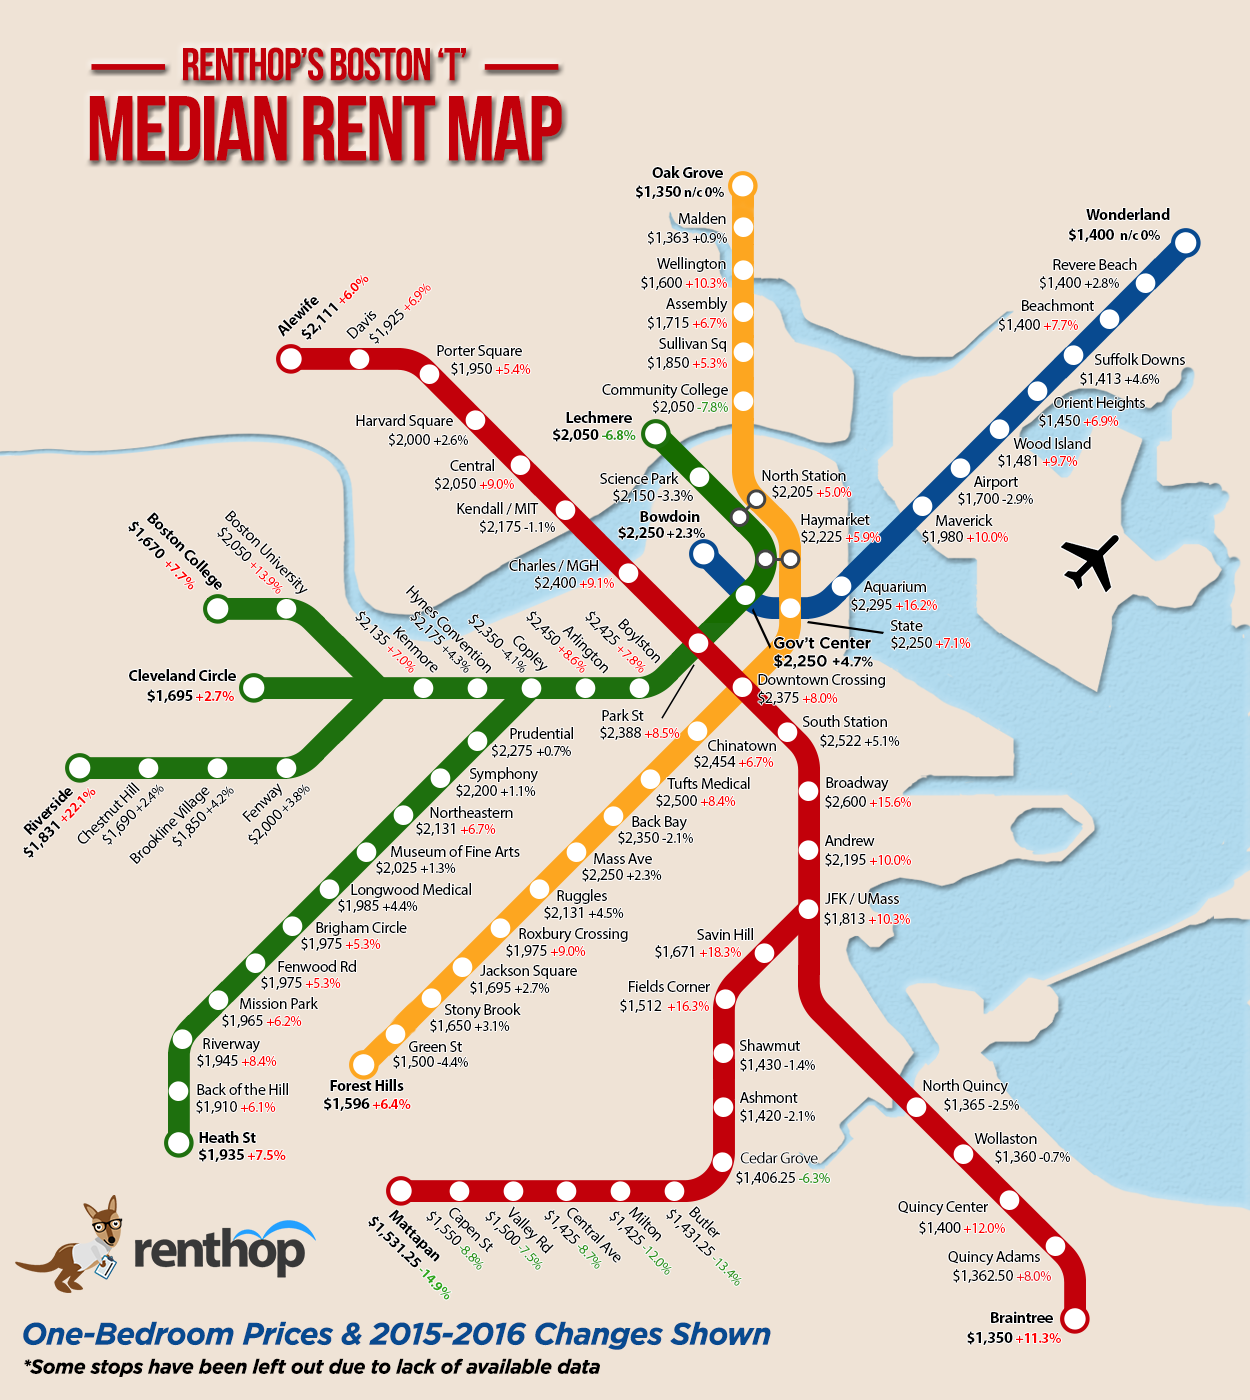 Subway Map Boston Mass.A Map Of The Median One Bedroom Rent Near Each Mbta Stop